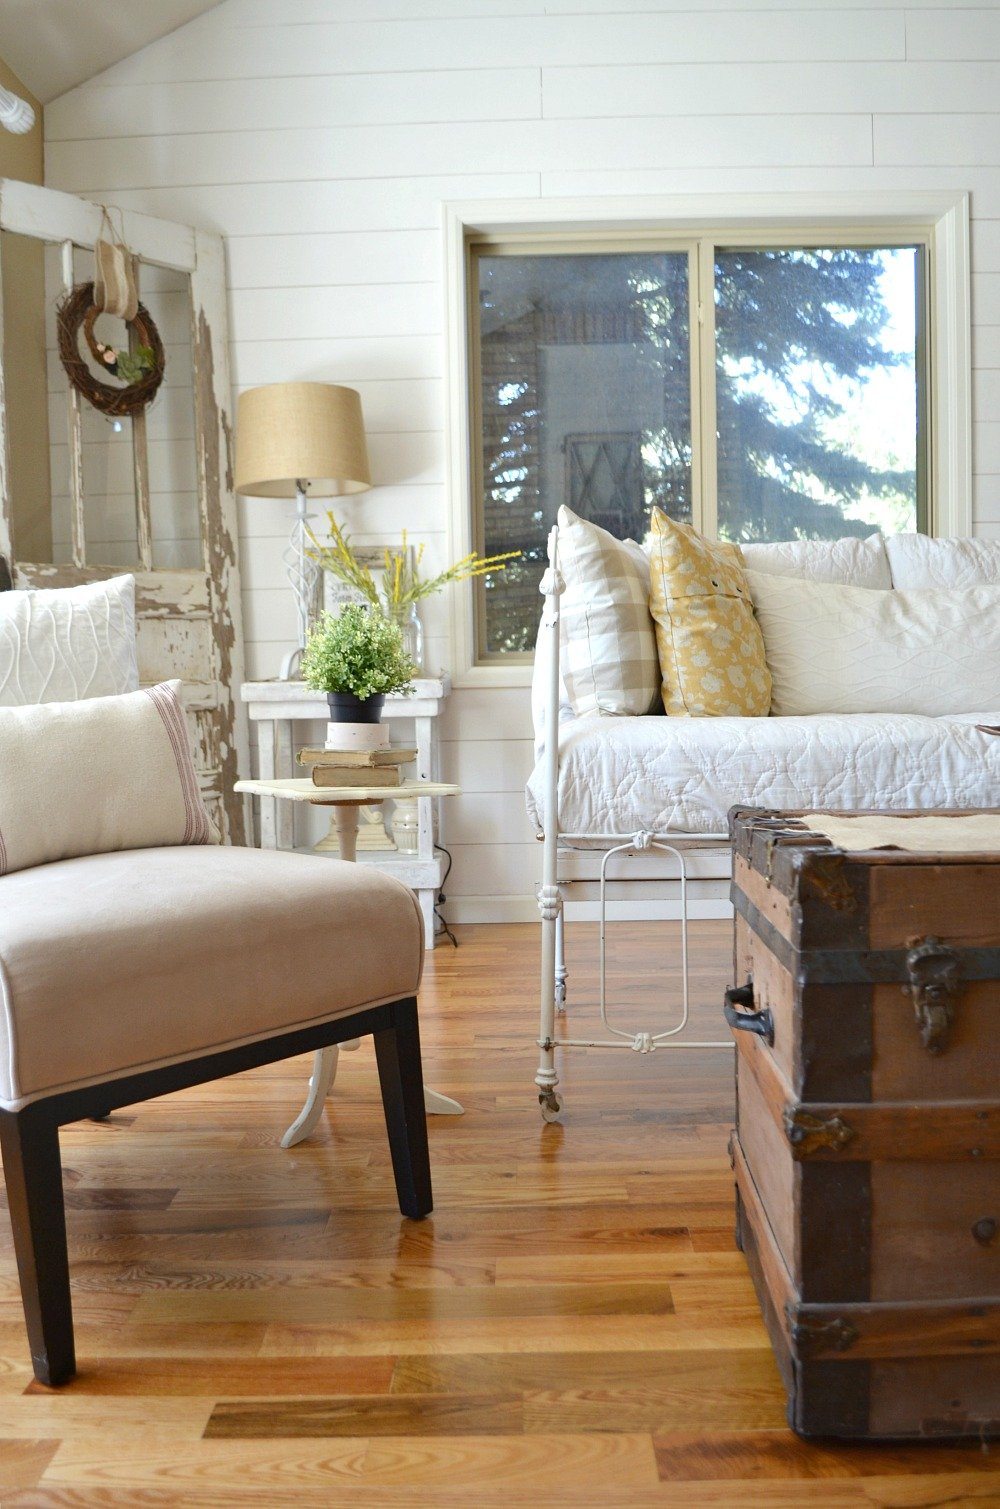 Vintage Crib converted into cozy couch 2